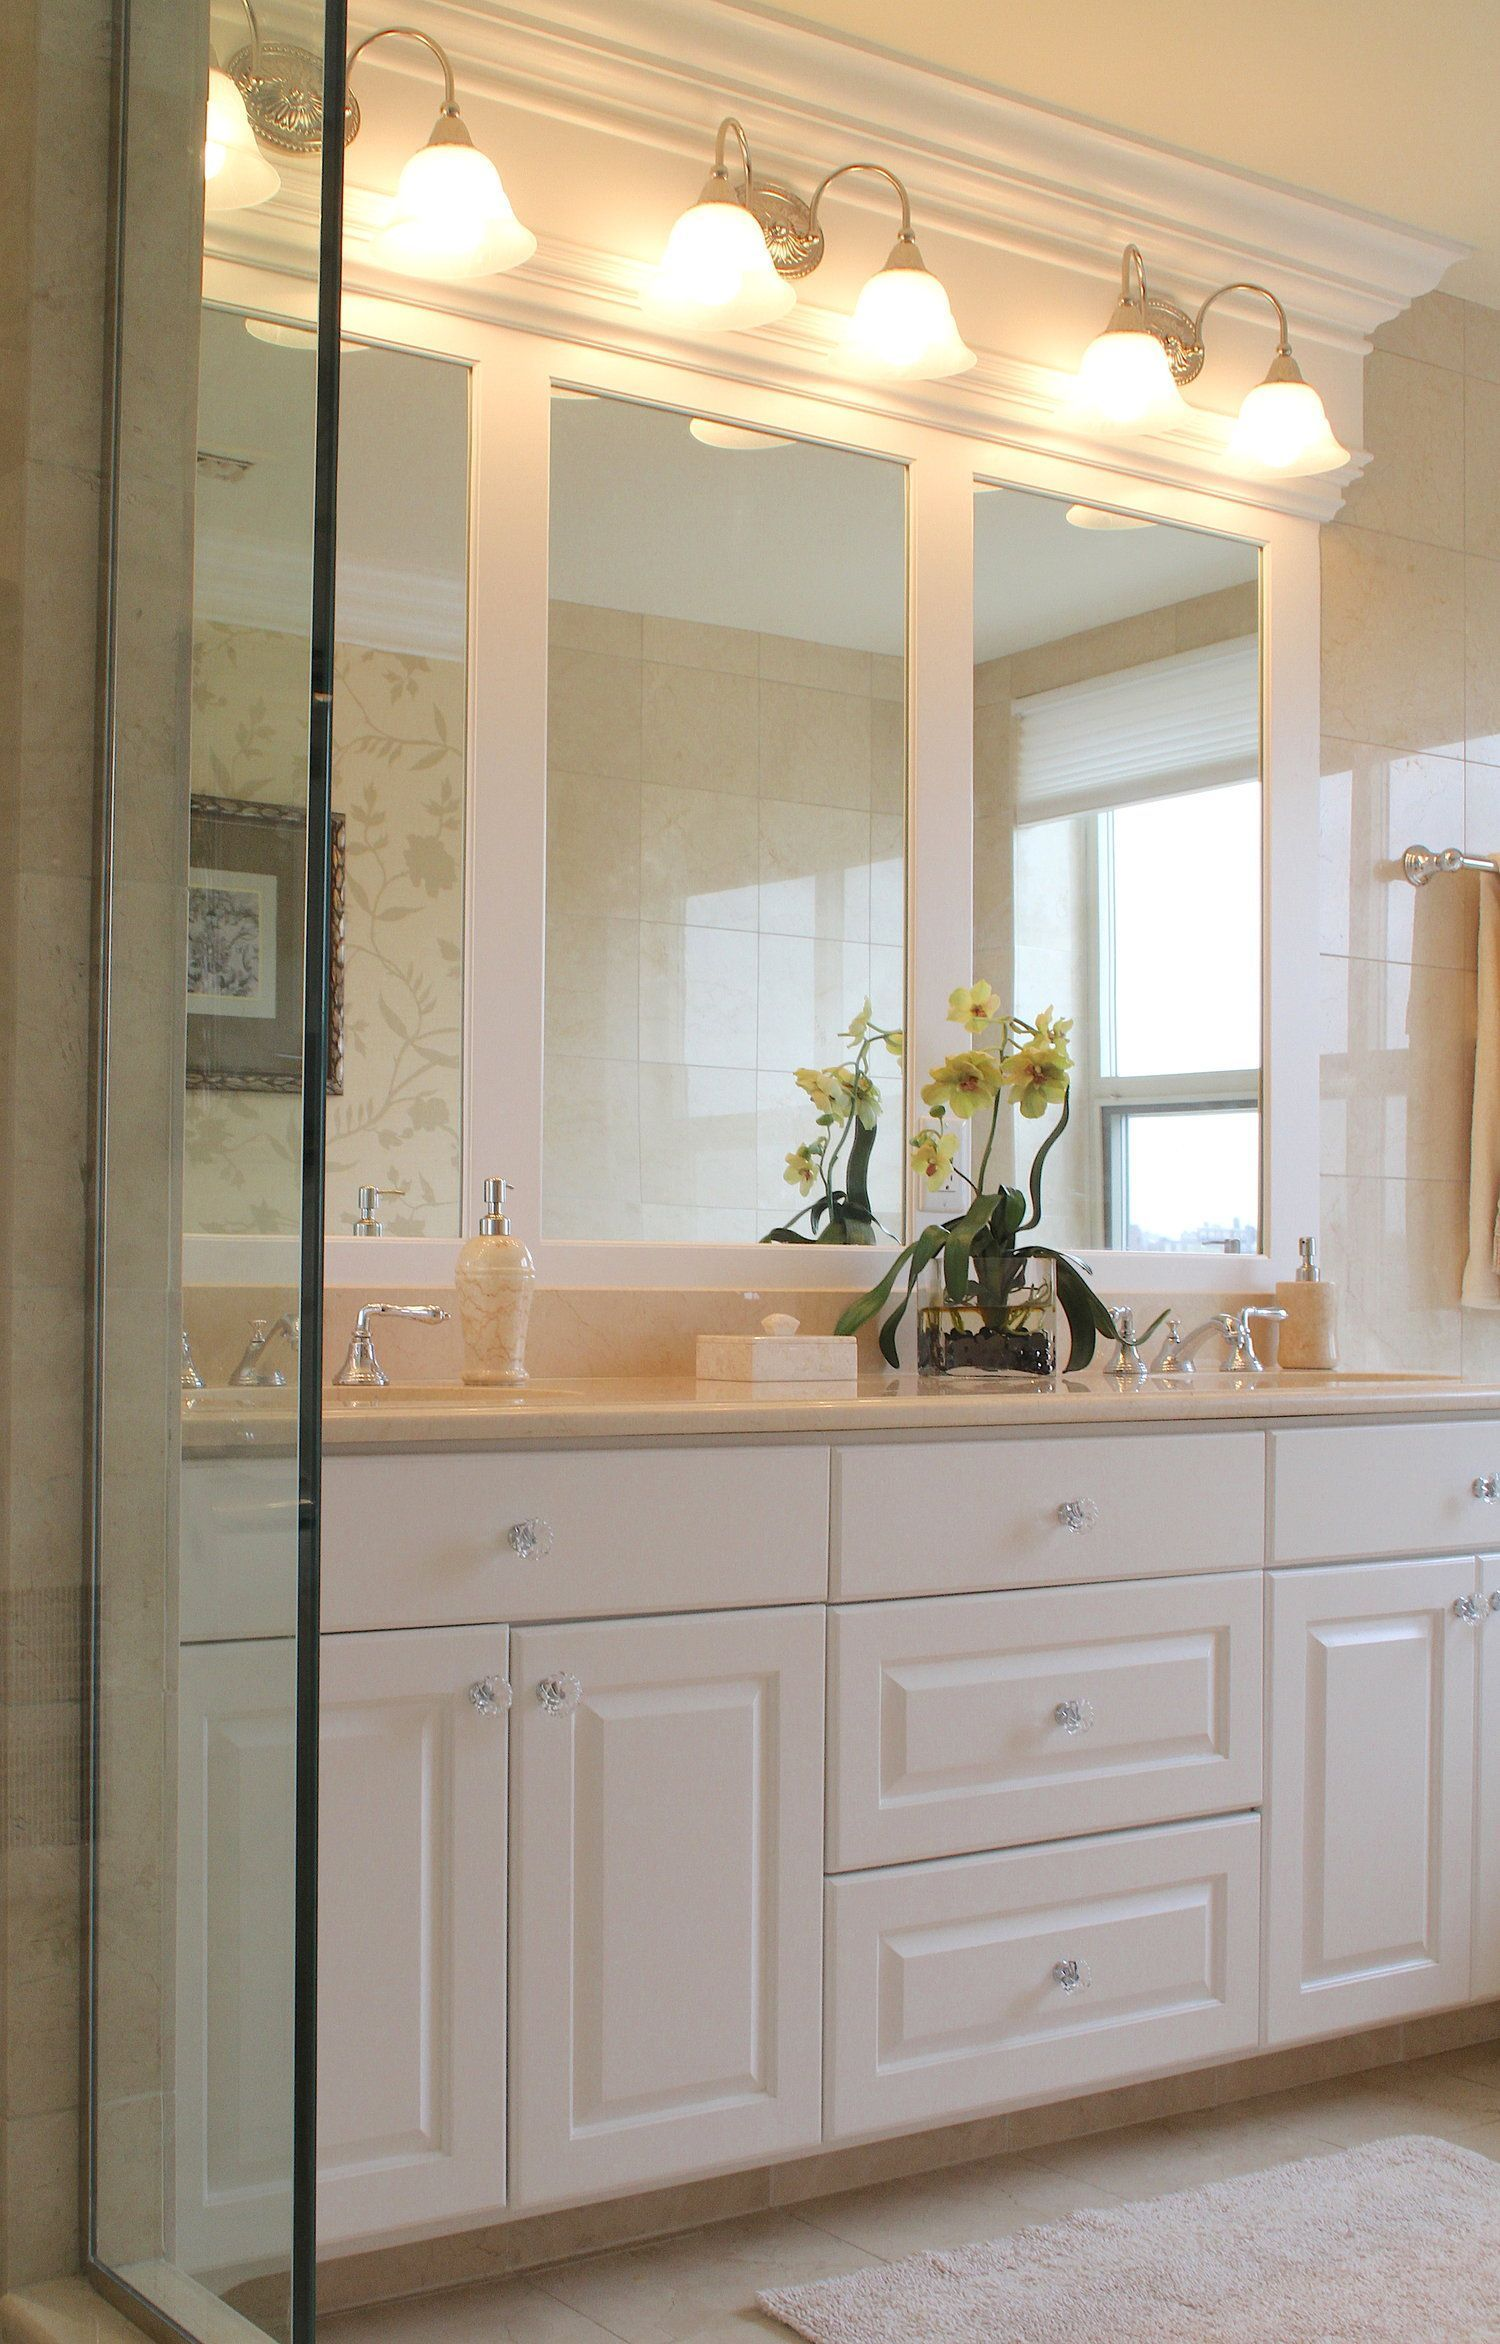 Custom Millwork Was Designed To Mount These Light Fixtures Over The Mirrors In This Master Bathro Bathroom Mirror Design Large Bathroom Mirrors Bathroom Mirror